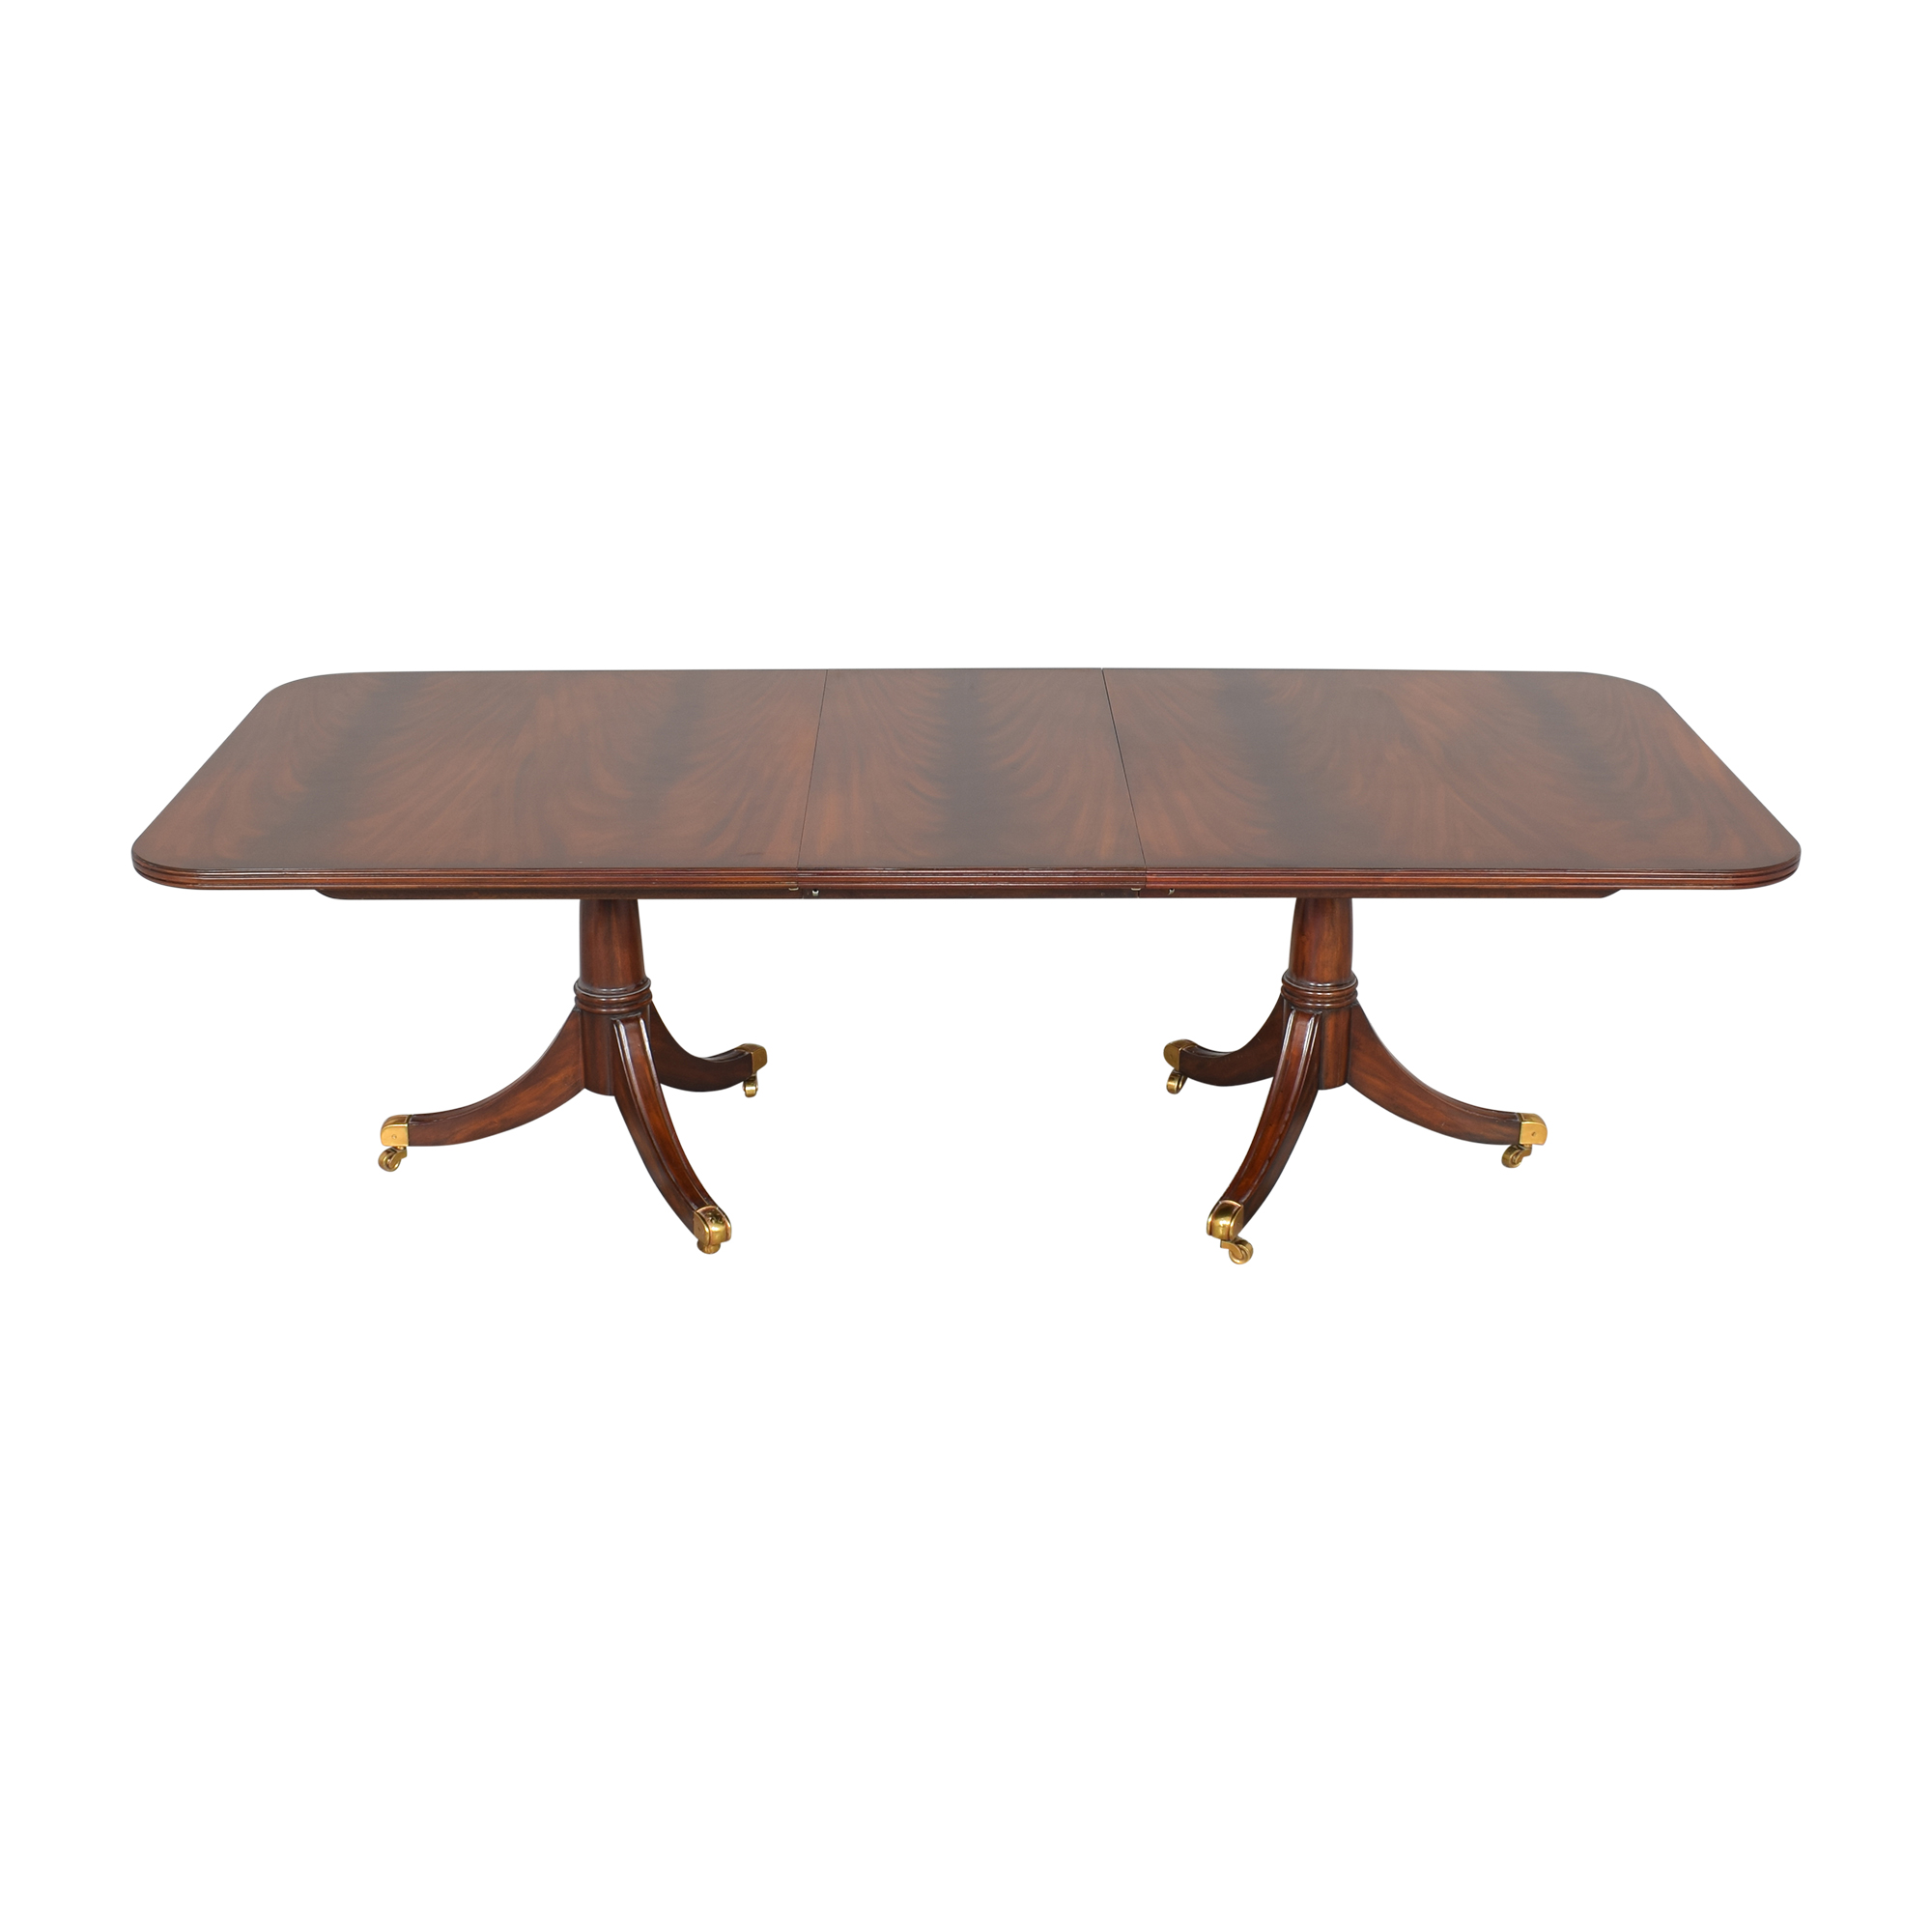 Maitland-Smith Maitland-Smith Double Pedestal Extendable Dining Table coupon